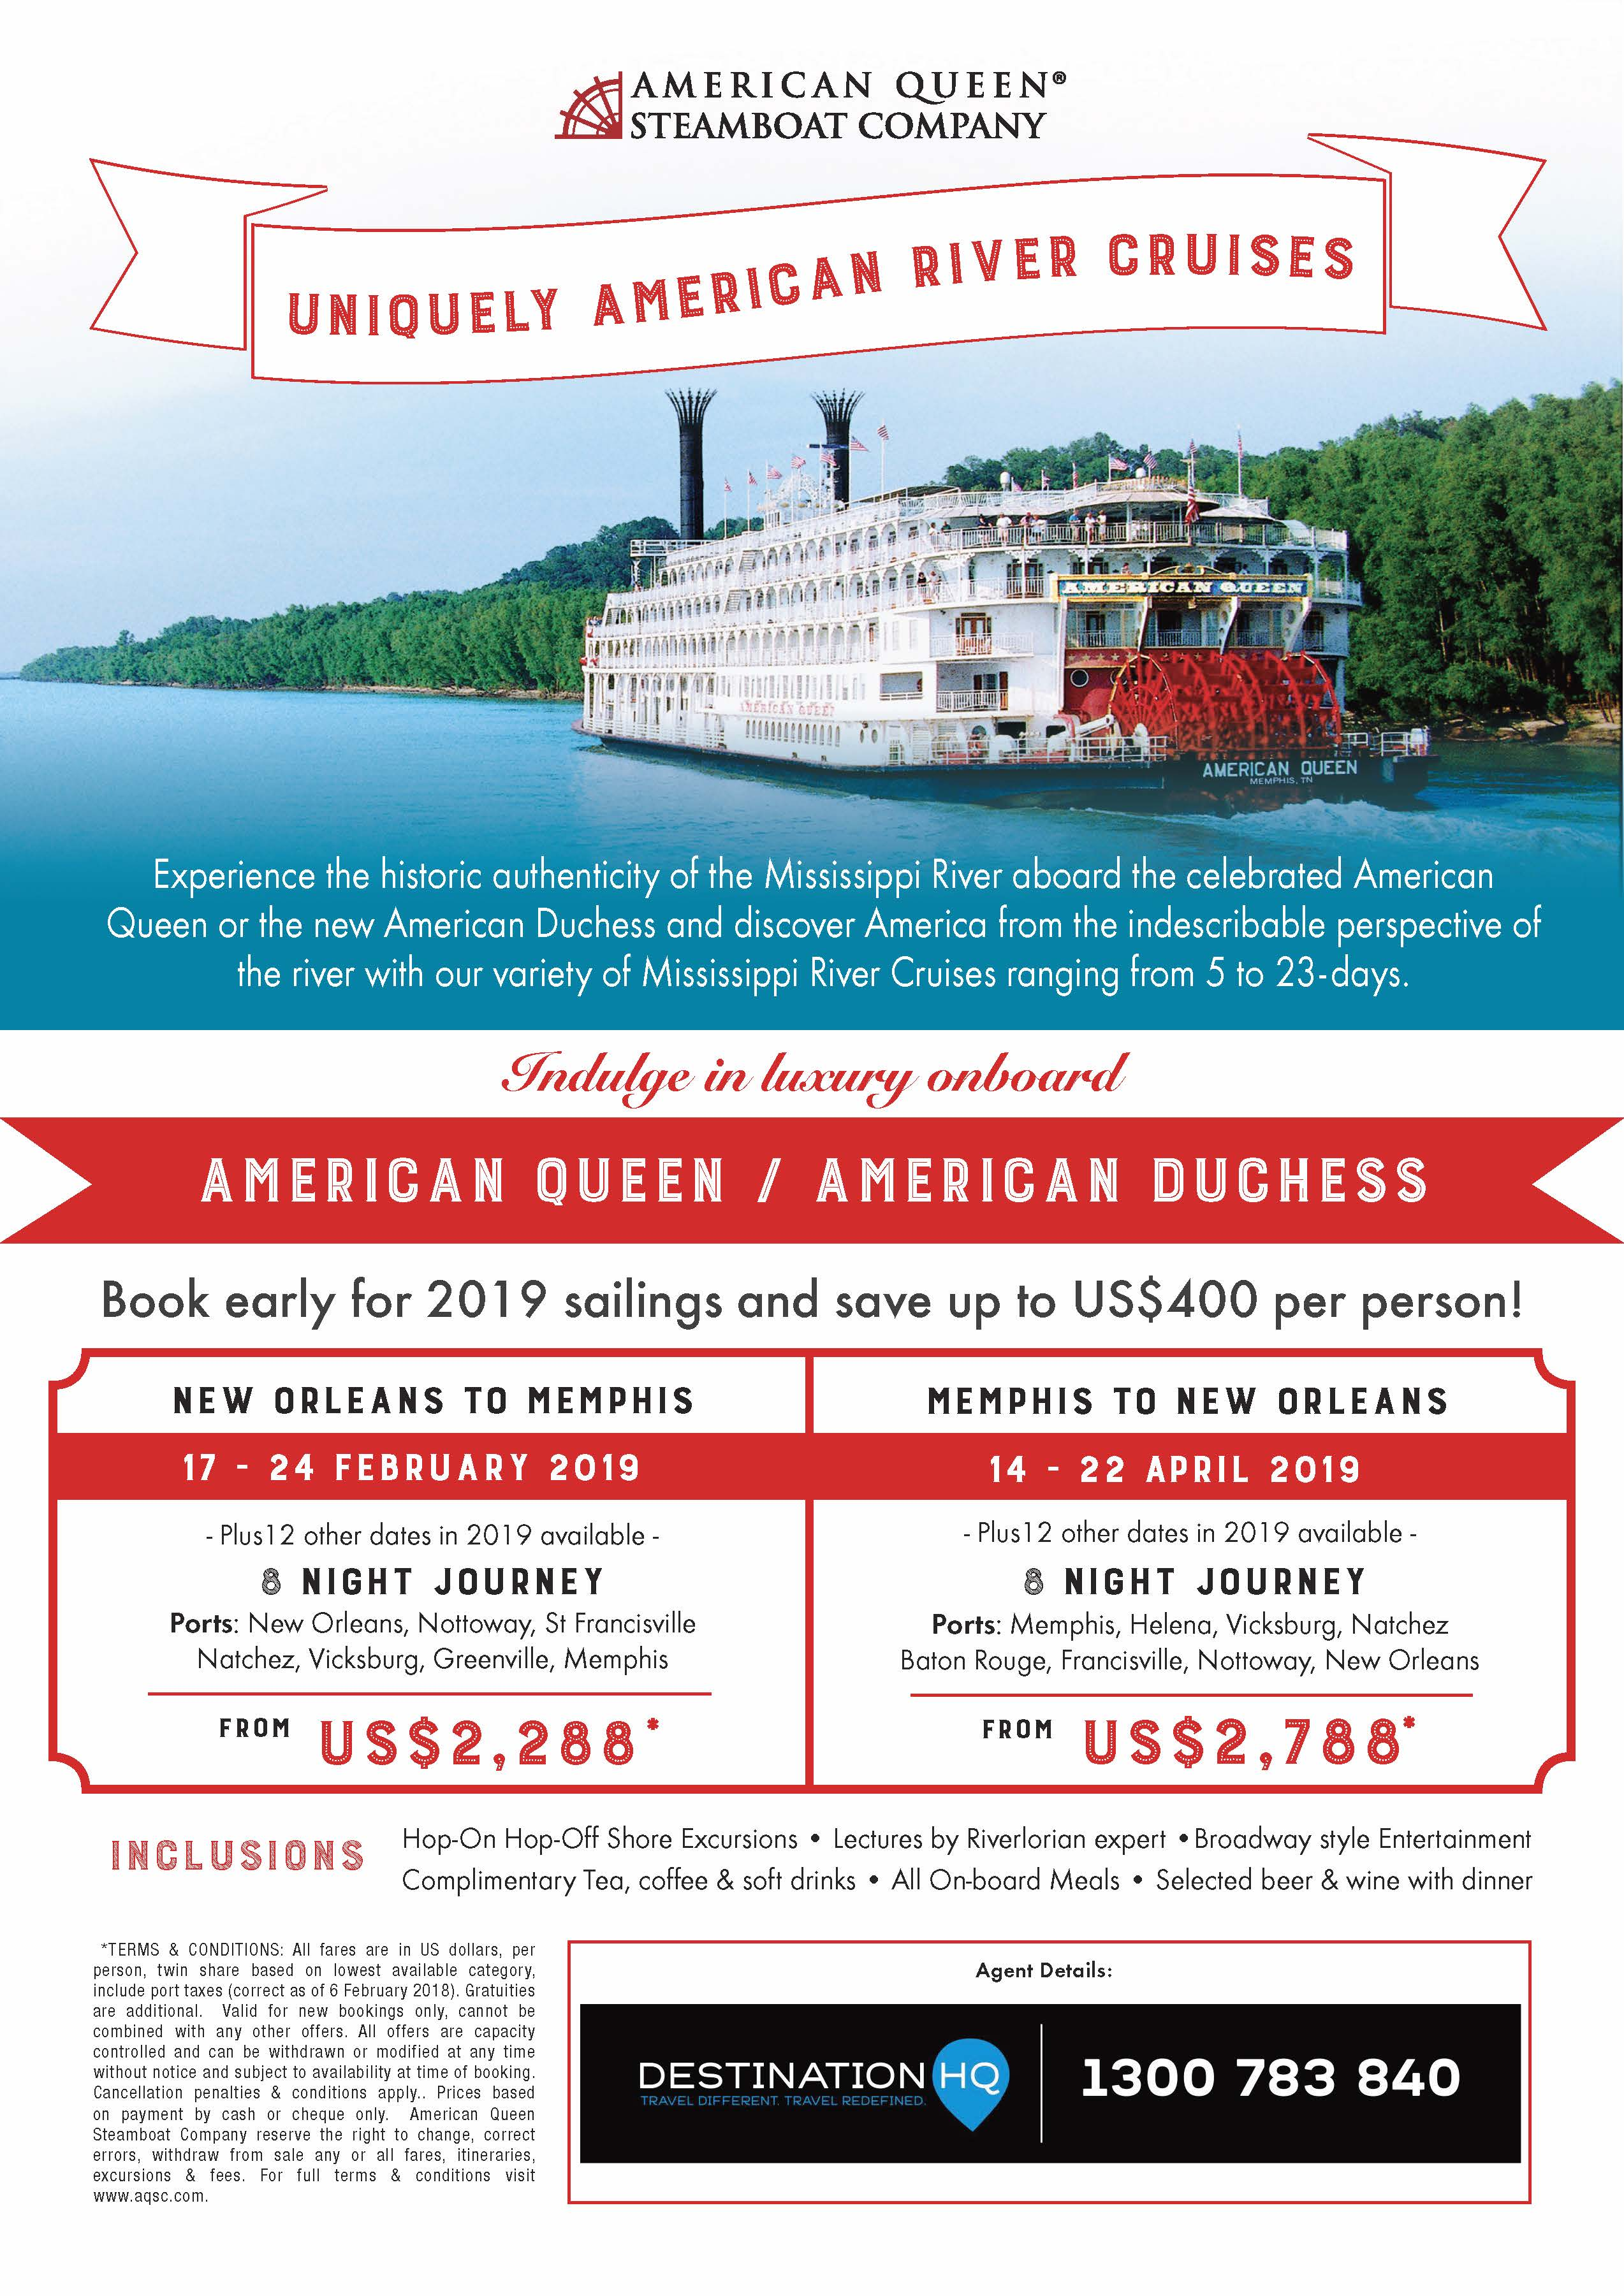 river cruising hq experience a uniquely american river cruise along the mississippi onboard an american steamboat call today for more details 1300 783